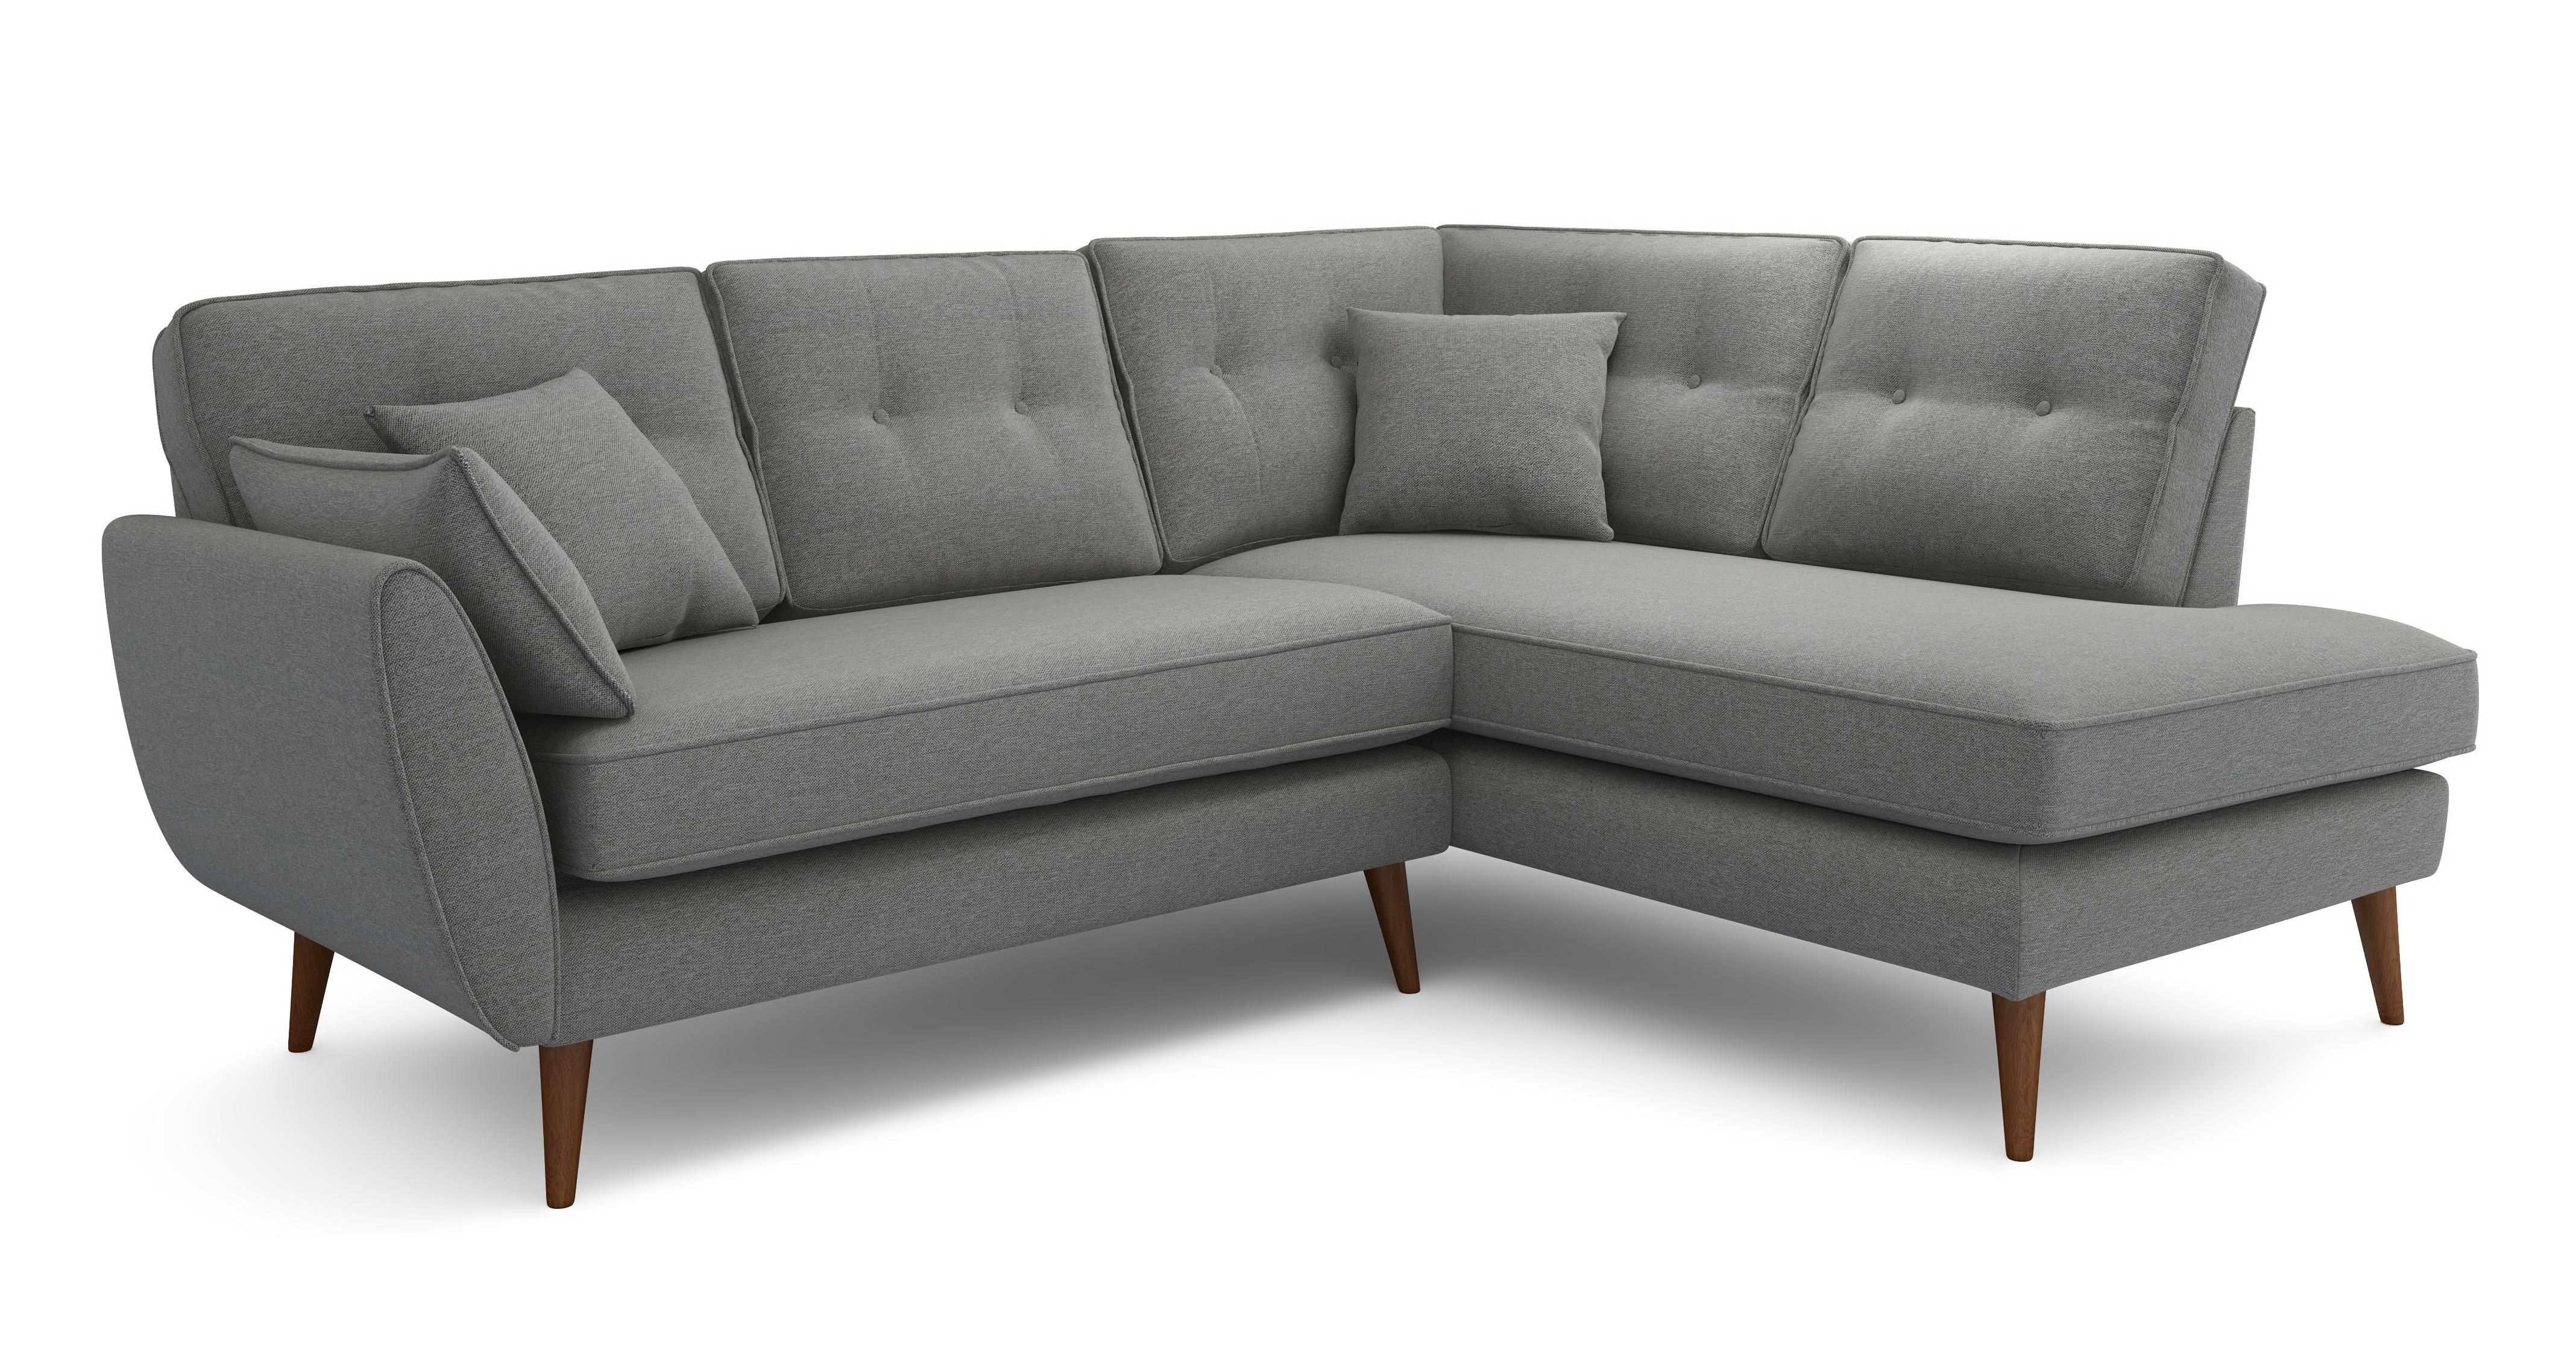 Zinc Weave Left Arm Facing Corner Group In 2020 Cushions For Sale Armchairs For Sale Corner Sofa